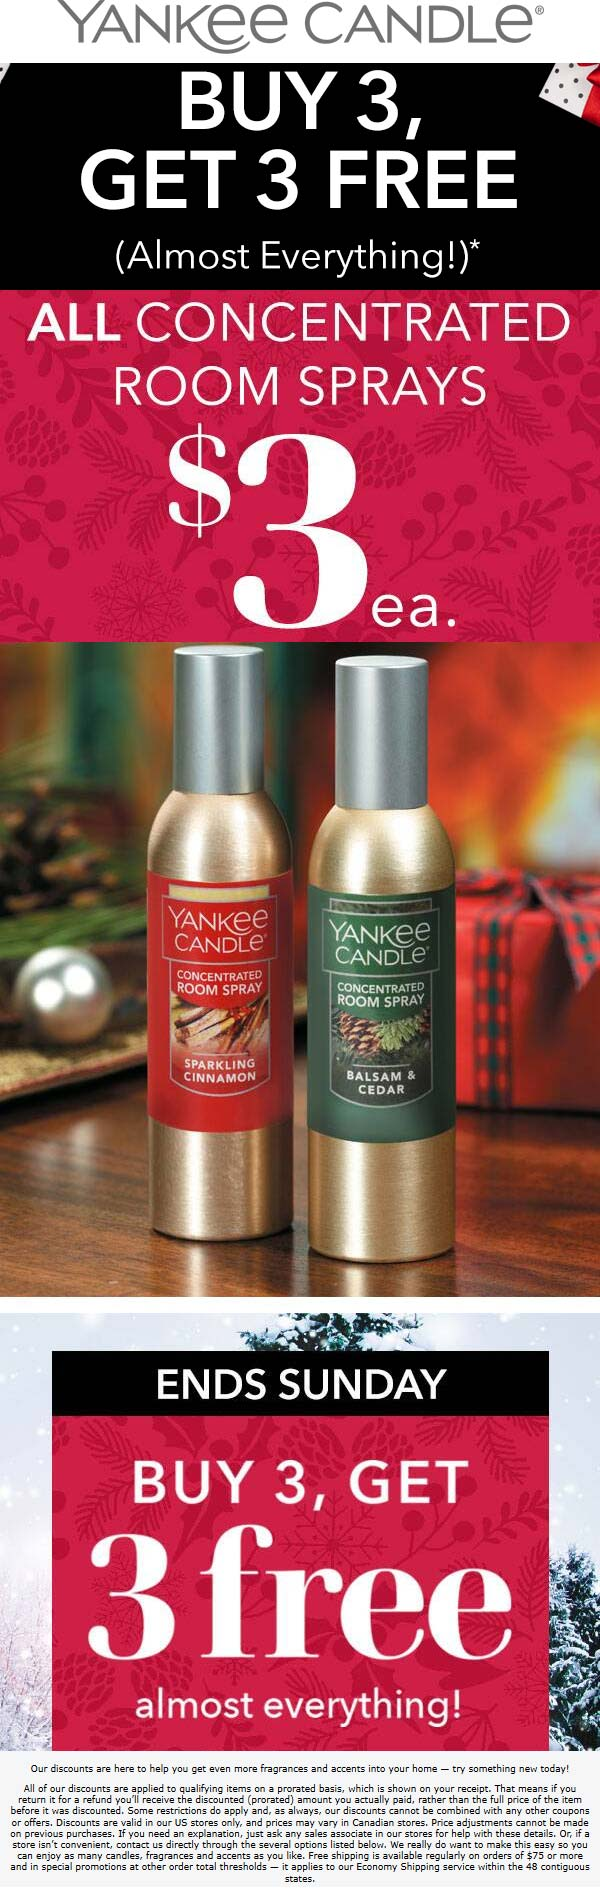 Yankee Candle Coupon December 2019 6-for-3 on everything at Yankee Candle, ditto online